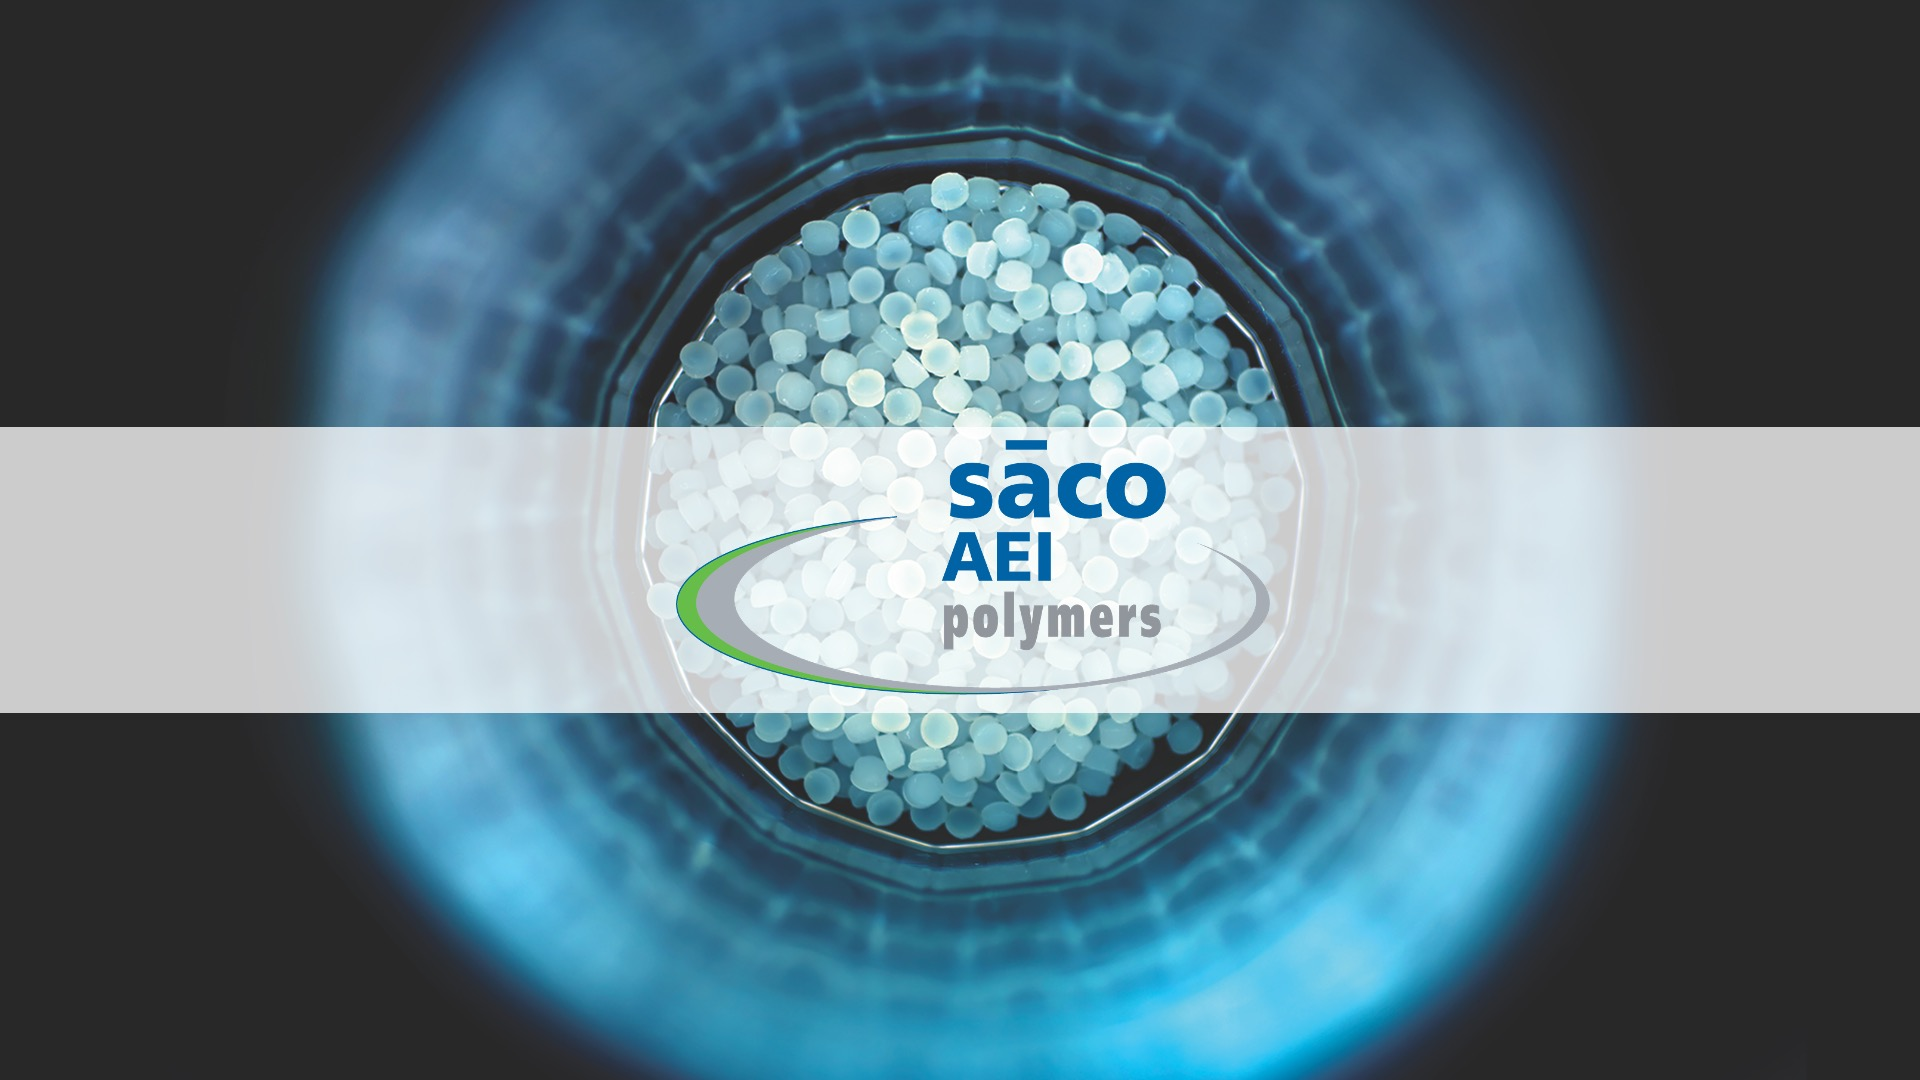 SACO AEI Polymers Distribution Specialty Plastic Products